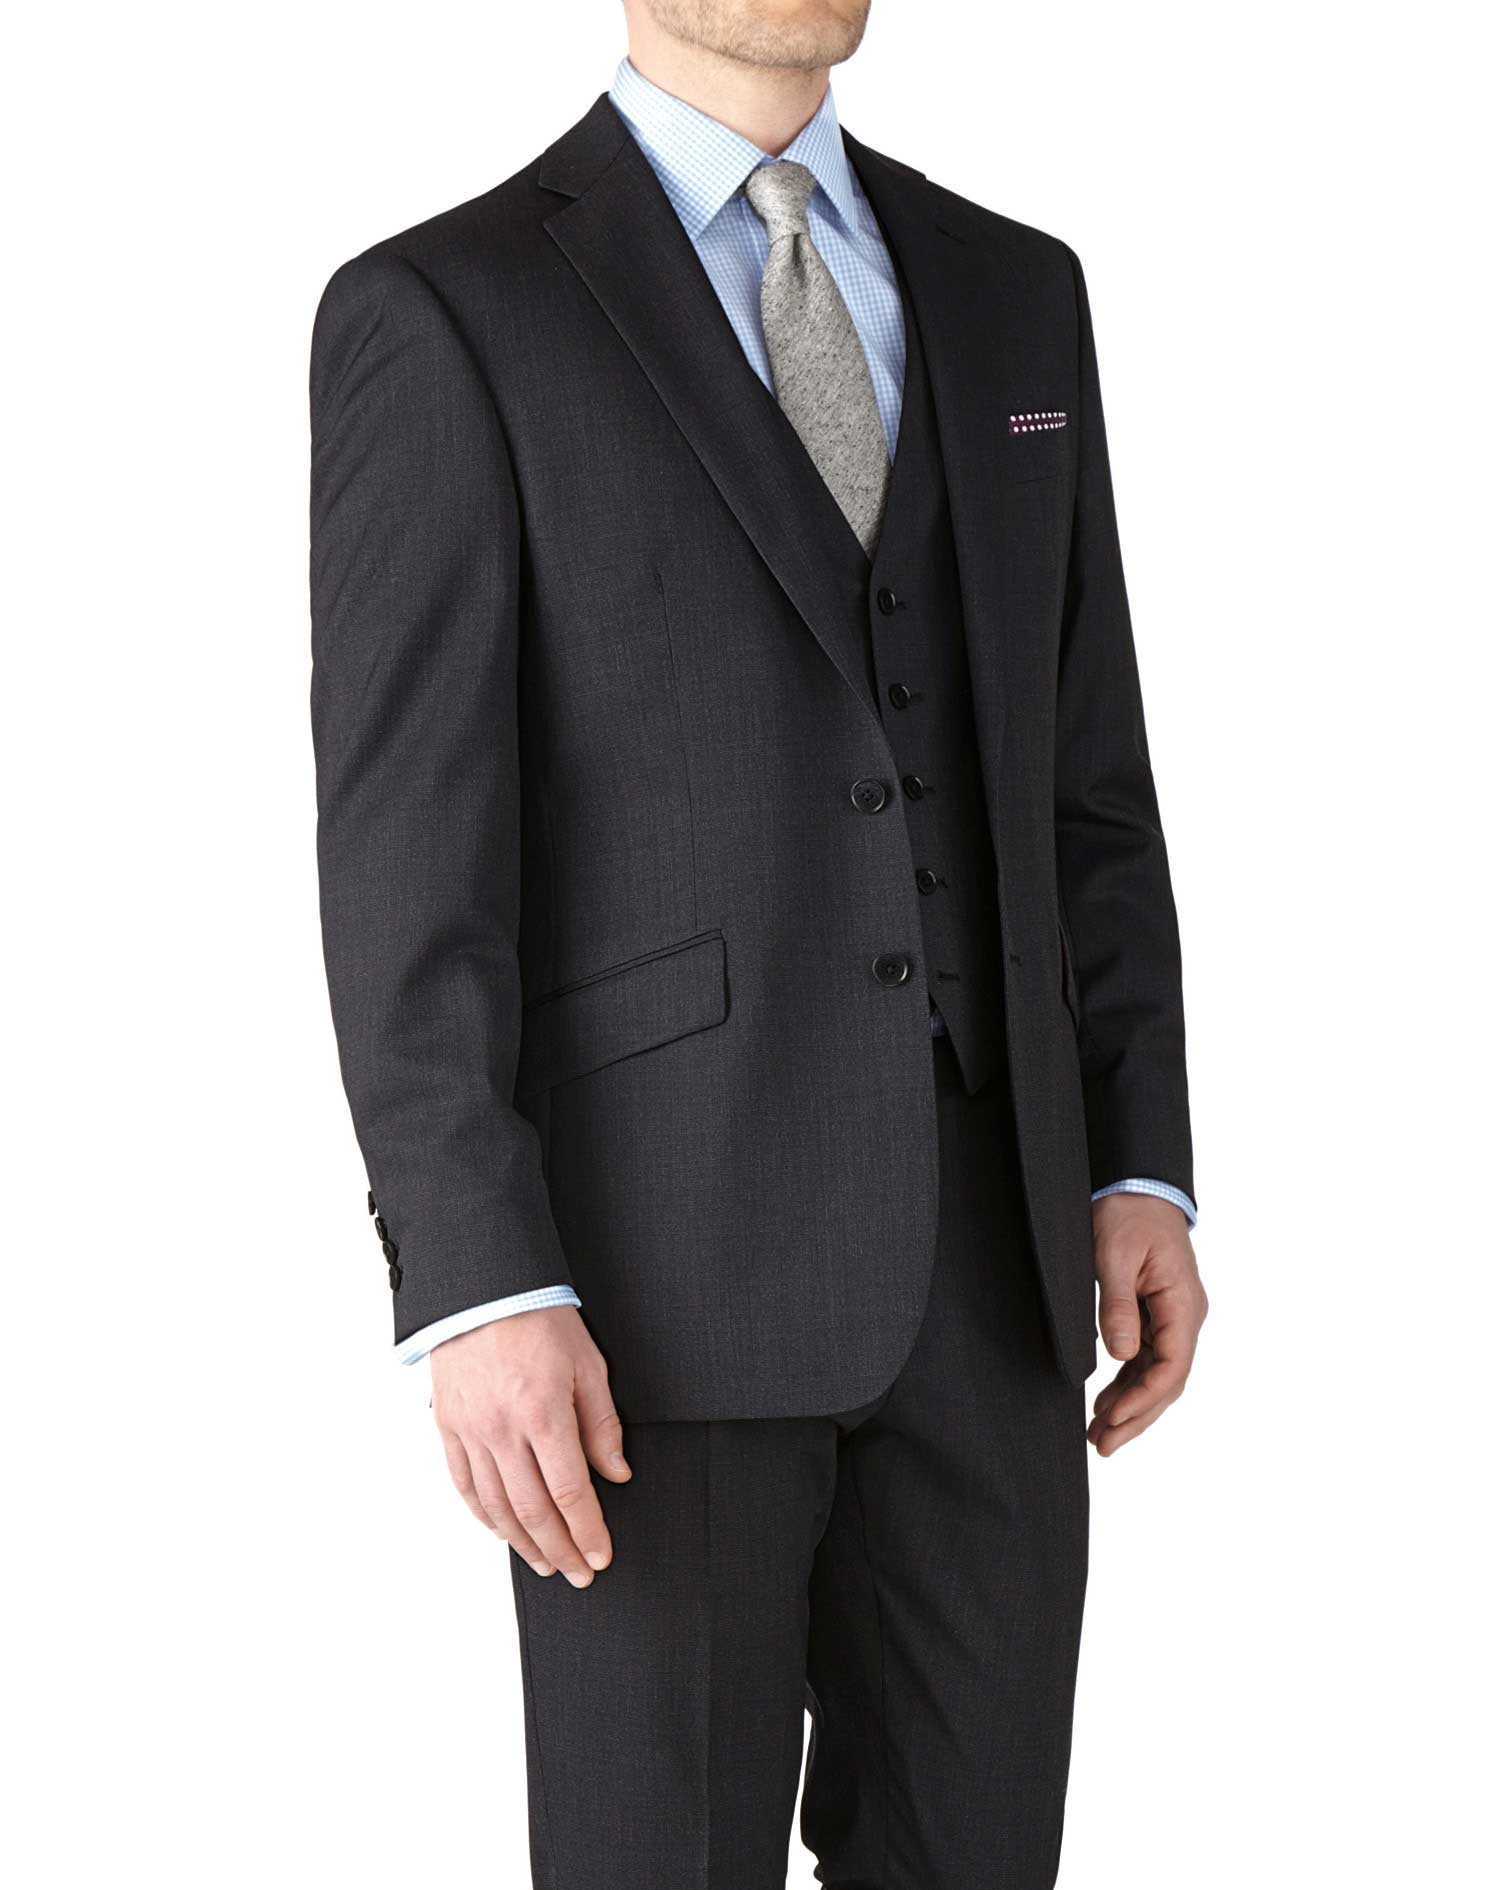 Charcoal Classic Fit End-On-End Business Suit Wool Jacket Size 48 Regular by Charles Tyrwhitt